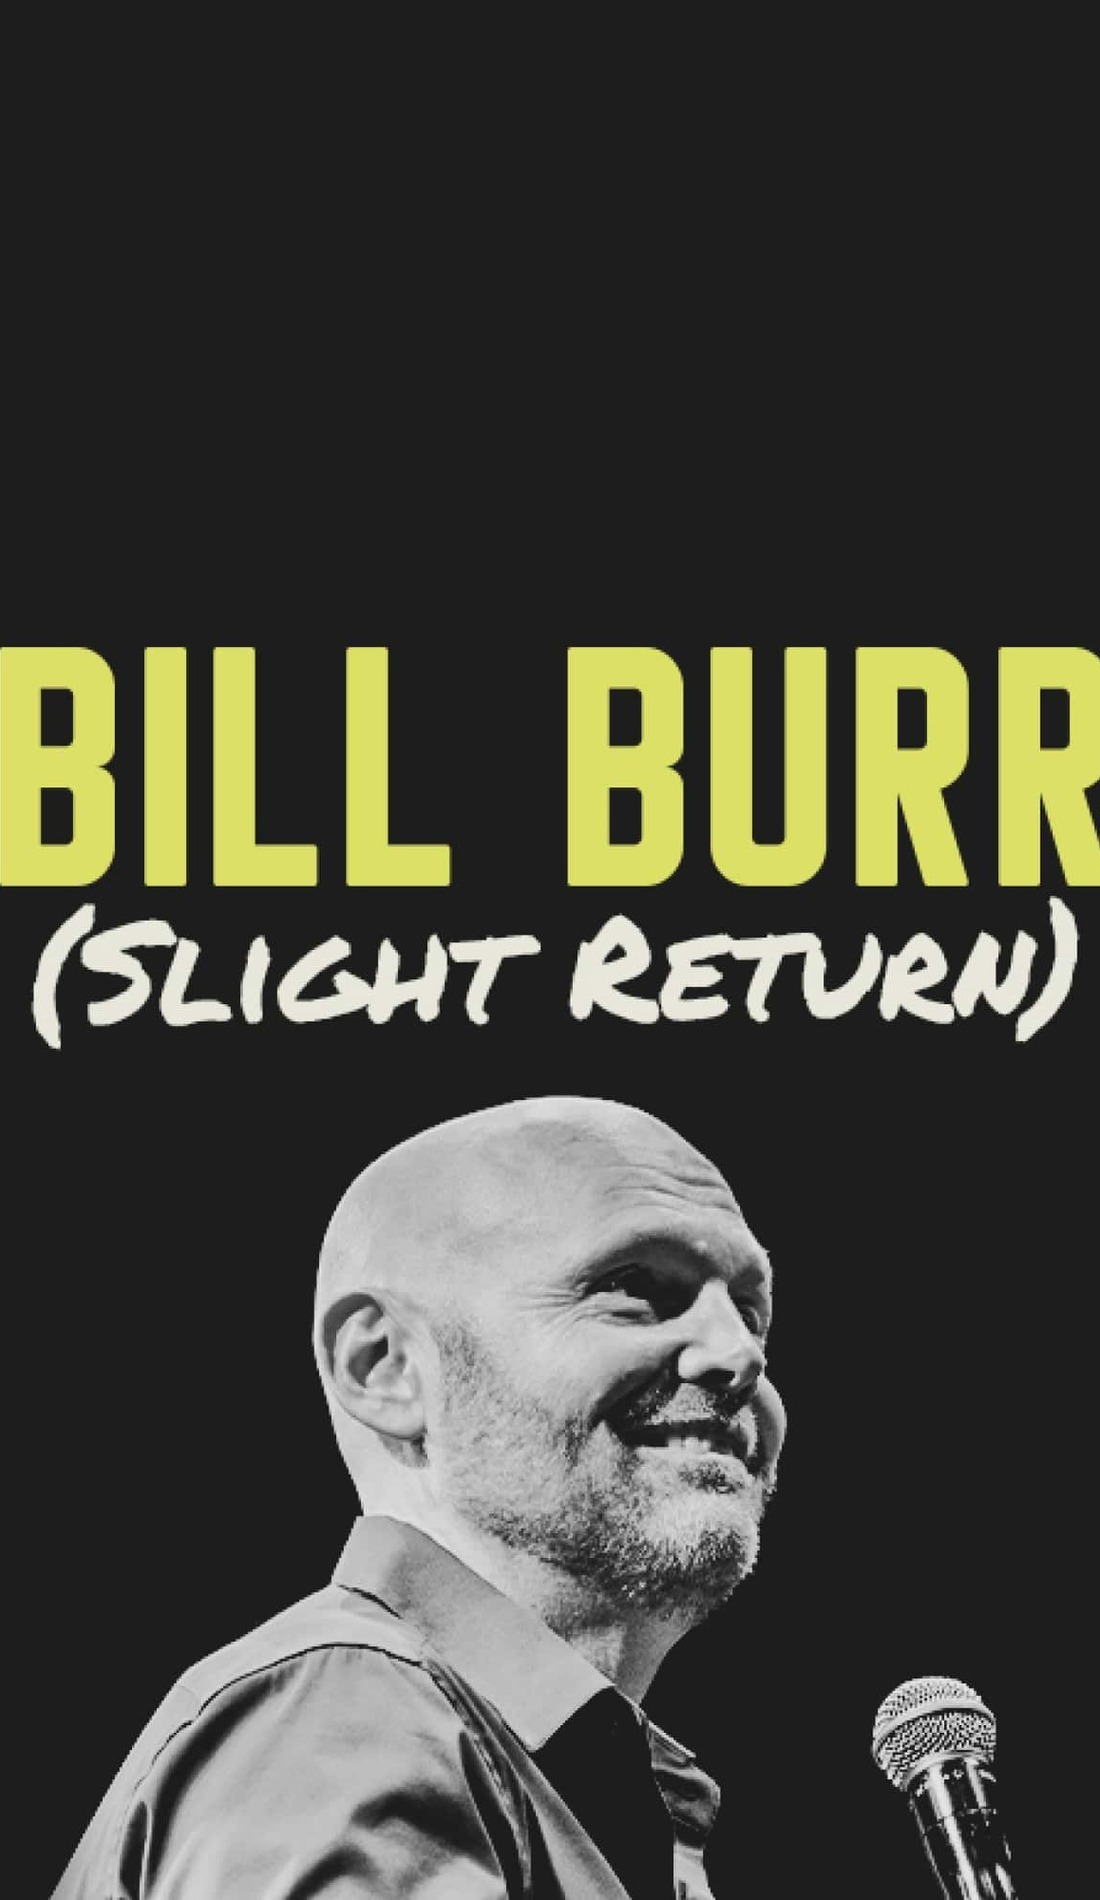 A Bill Burr live event